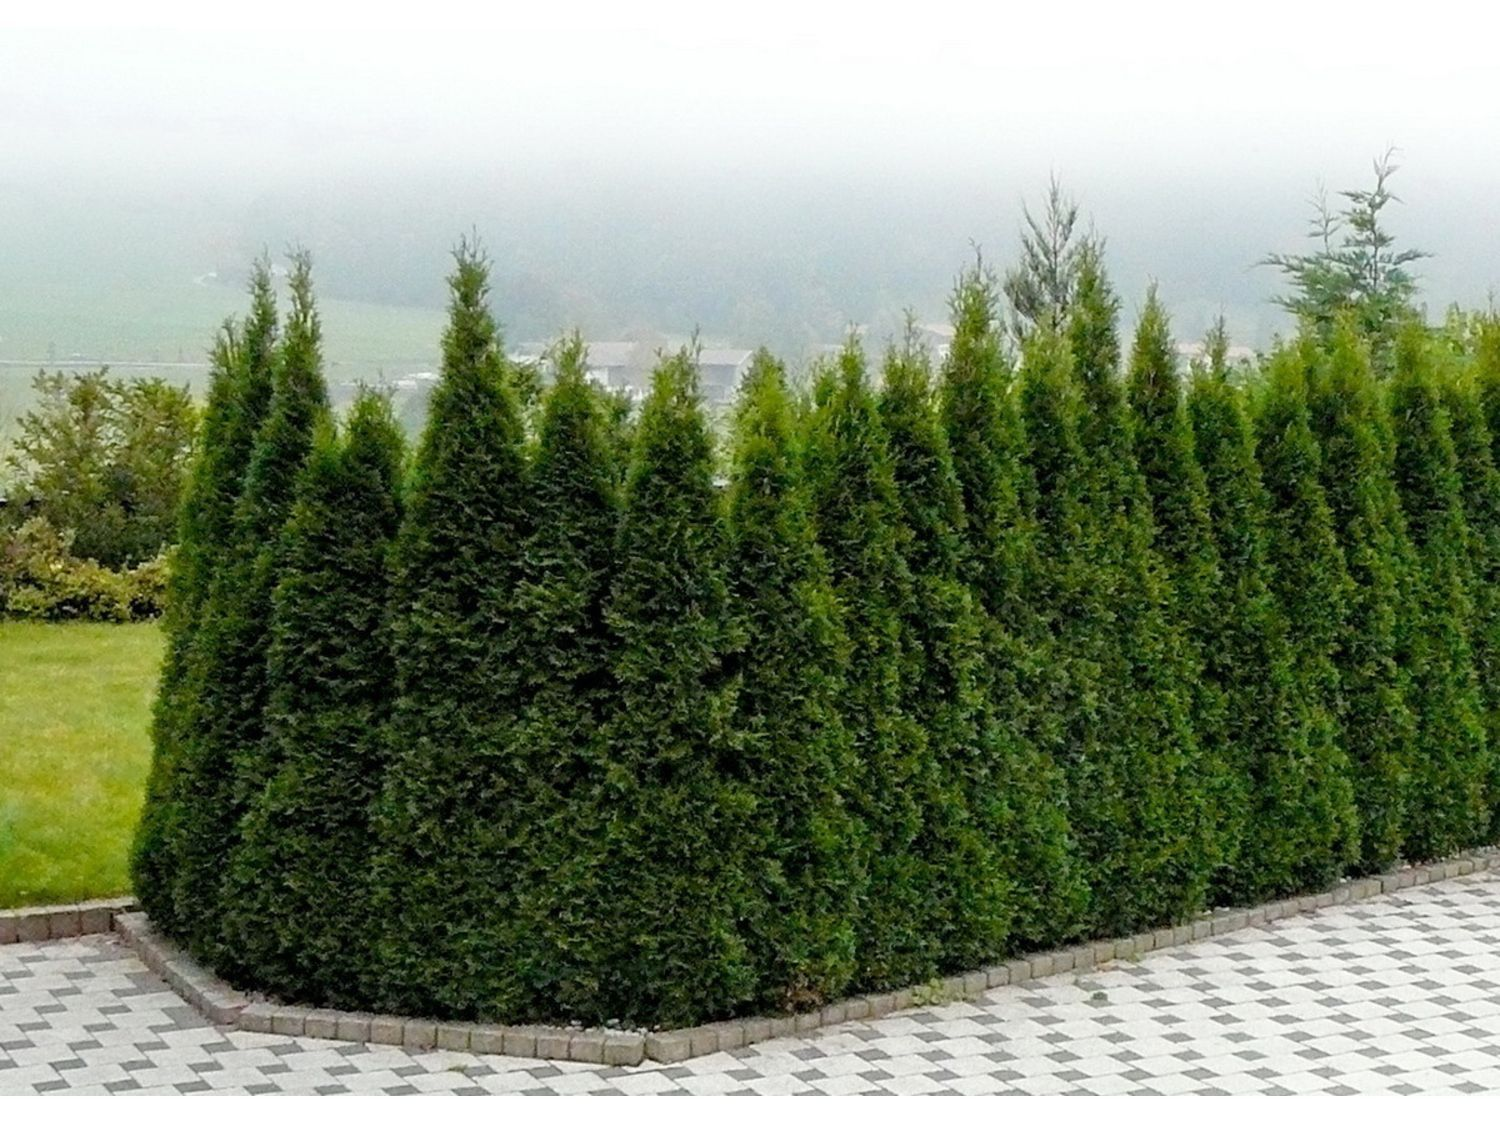 Arborvitae Emerald Green Is A Fast Growing Evergreen That Used As Privacy Screen Buffer Or Hedge Online At Garden Goods Direct